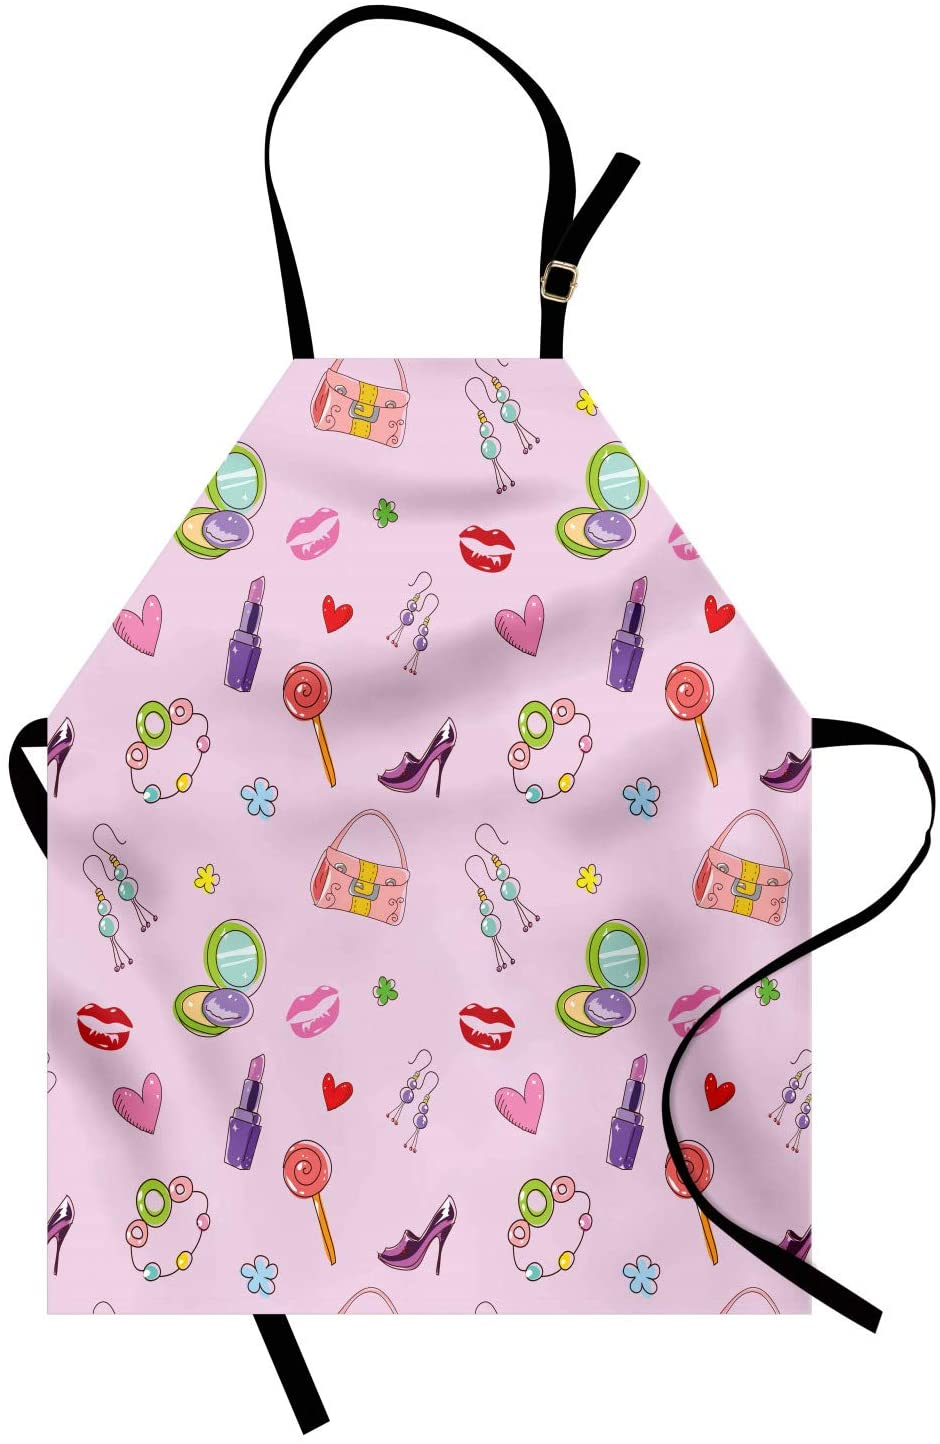 Ambesonne Princess Apron, Girls Illustration with Fashion Accessories and Makeup Lollipop Flower Print, Unisex Kitchen Bib with Adjustable Neck for Cooking Gardening, Adult Size, Pink Purple